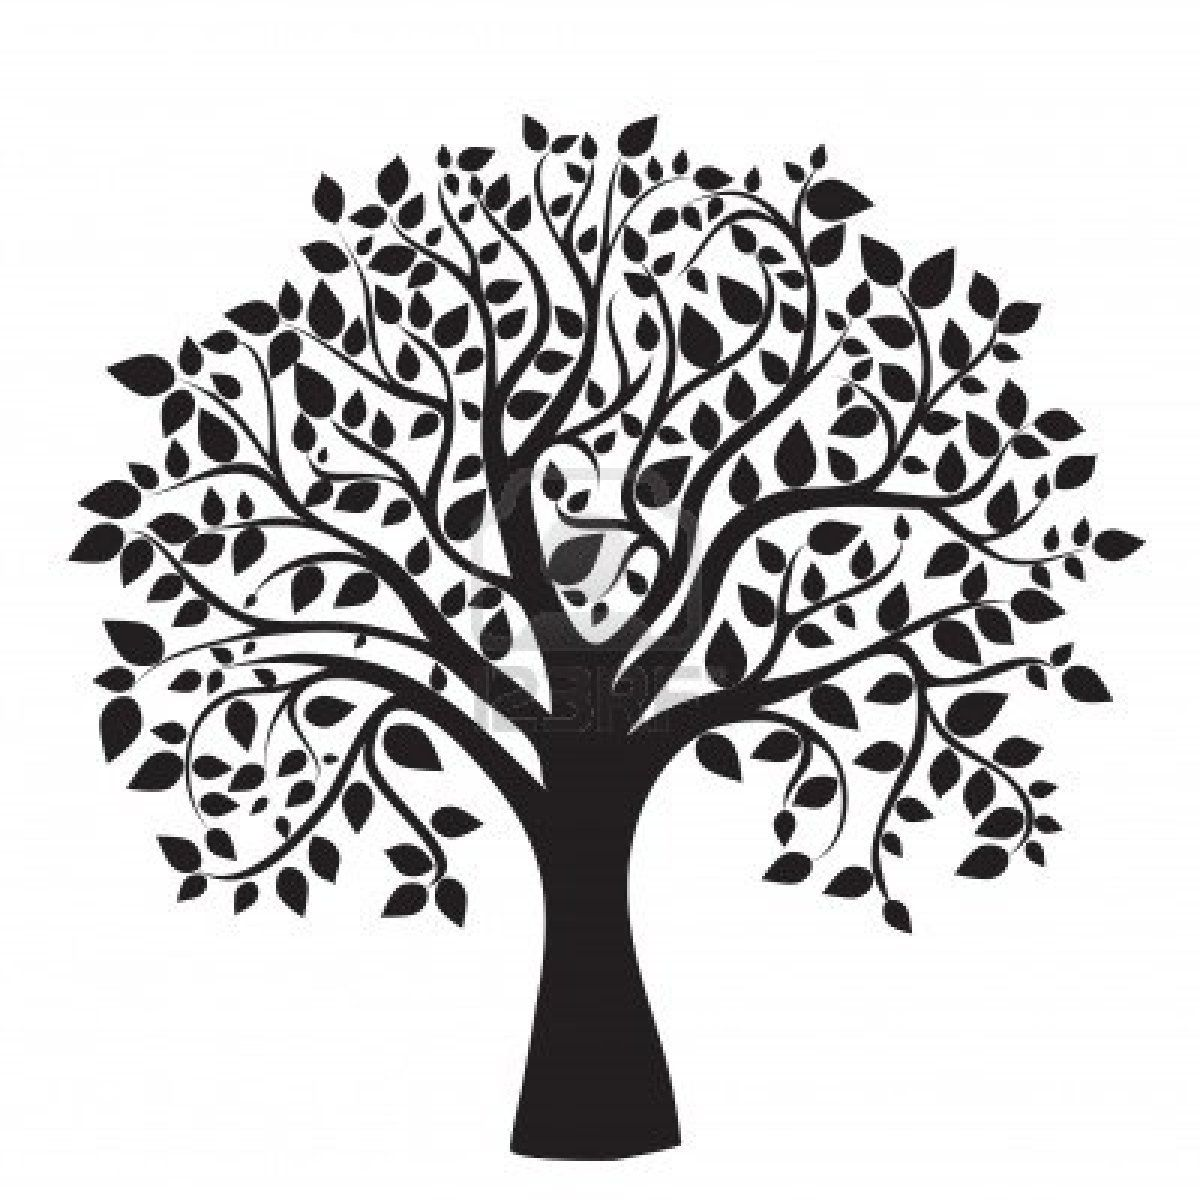 Black And White Tree Clipart Transparent Background.